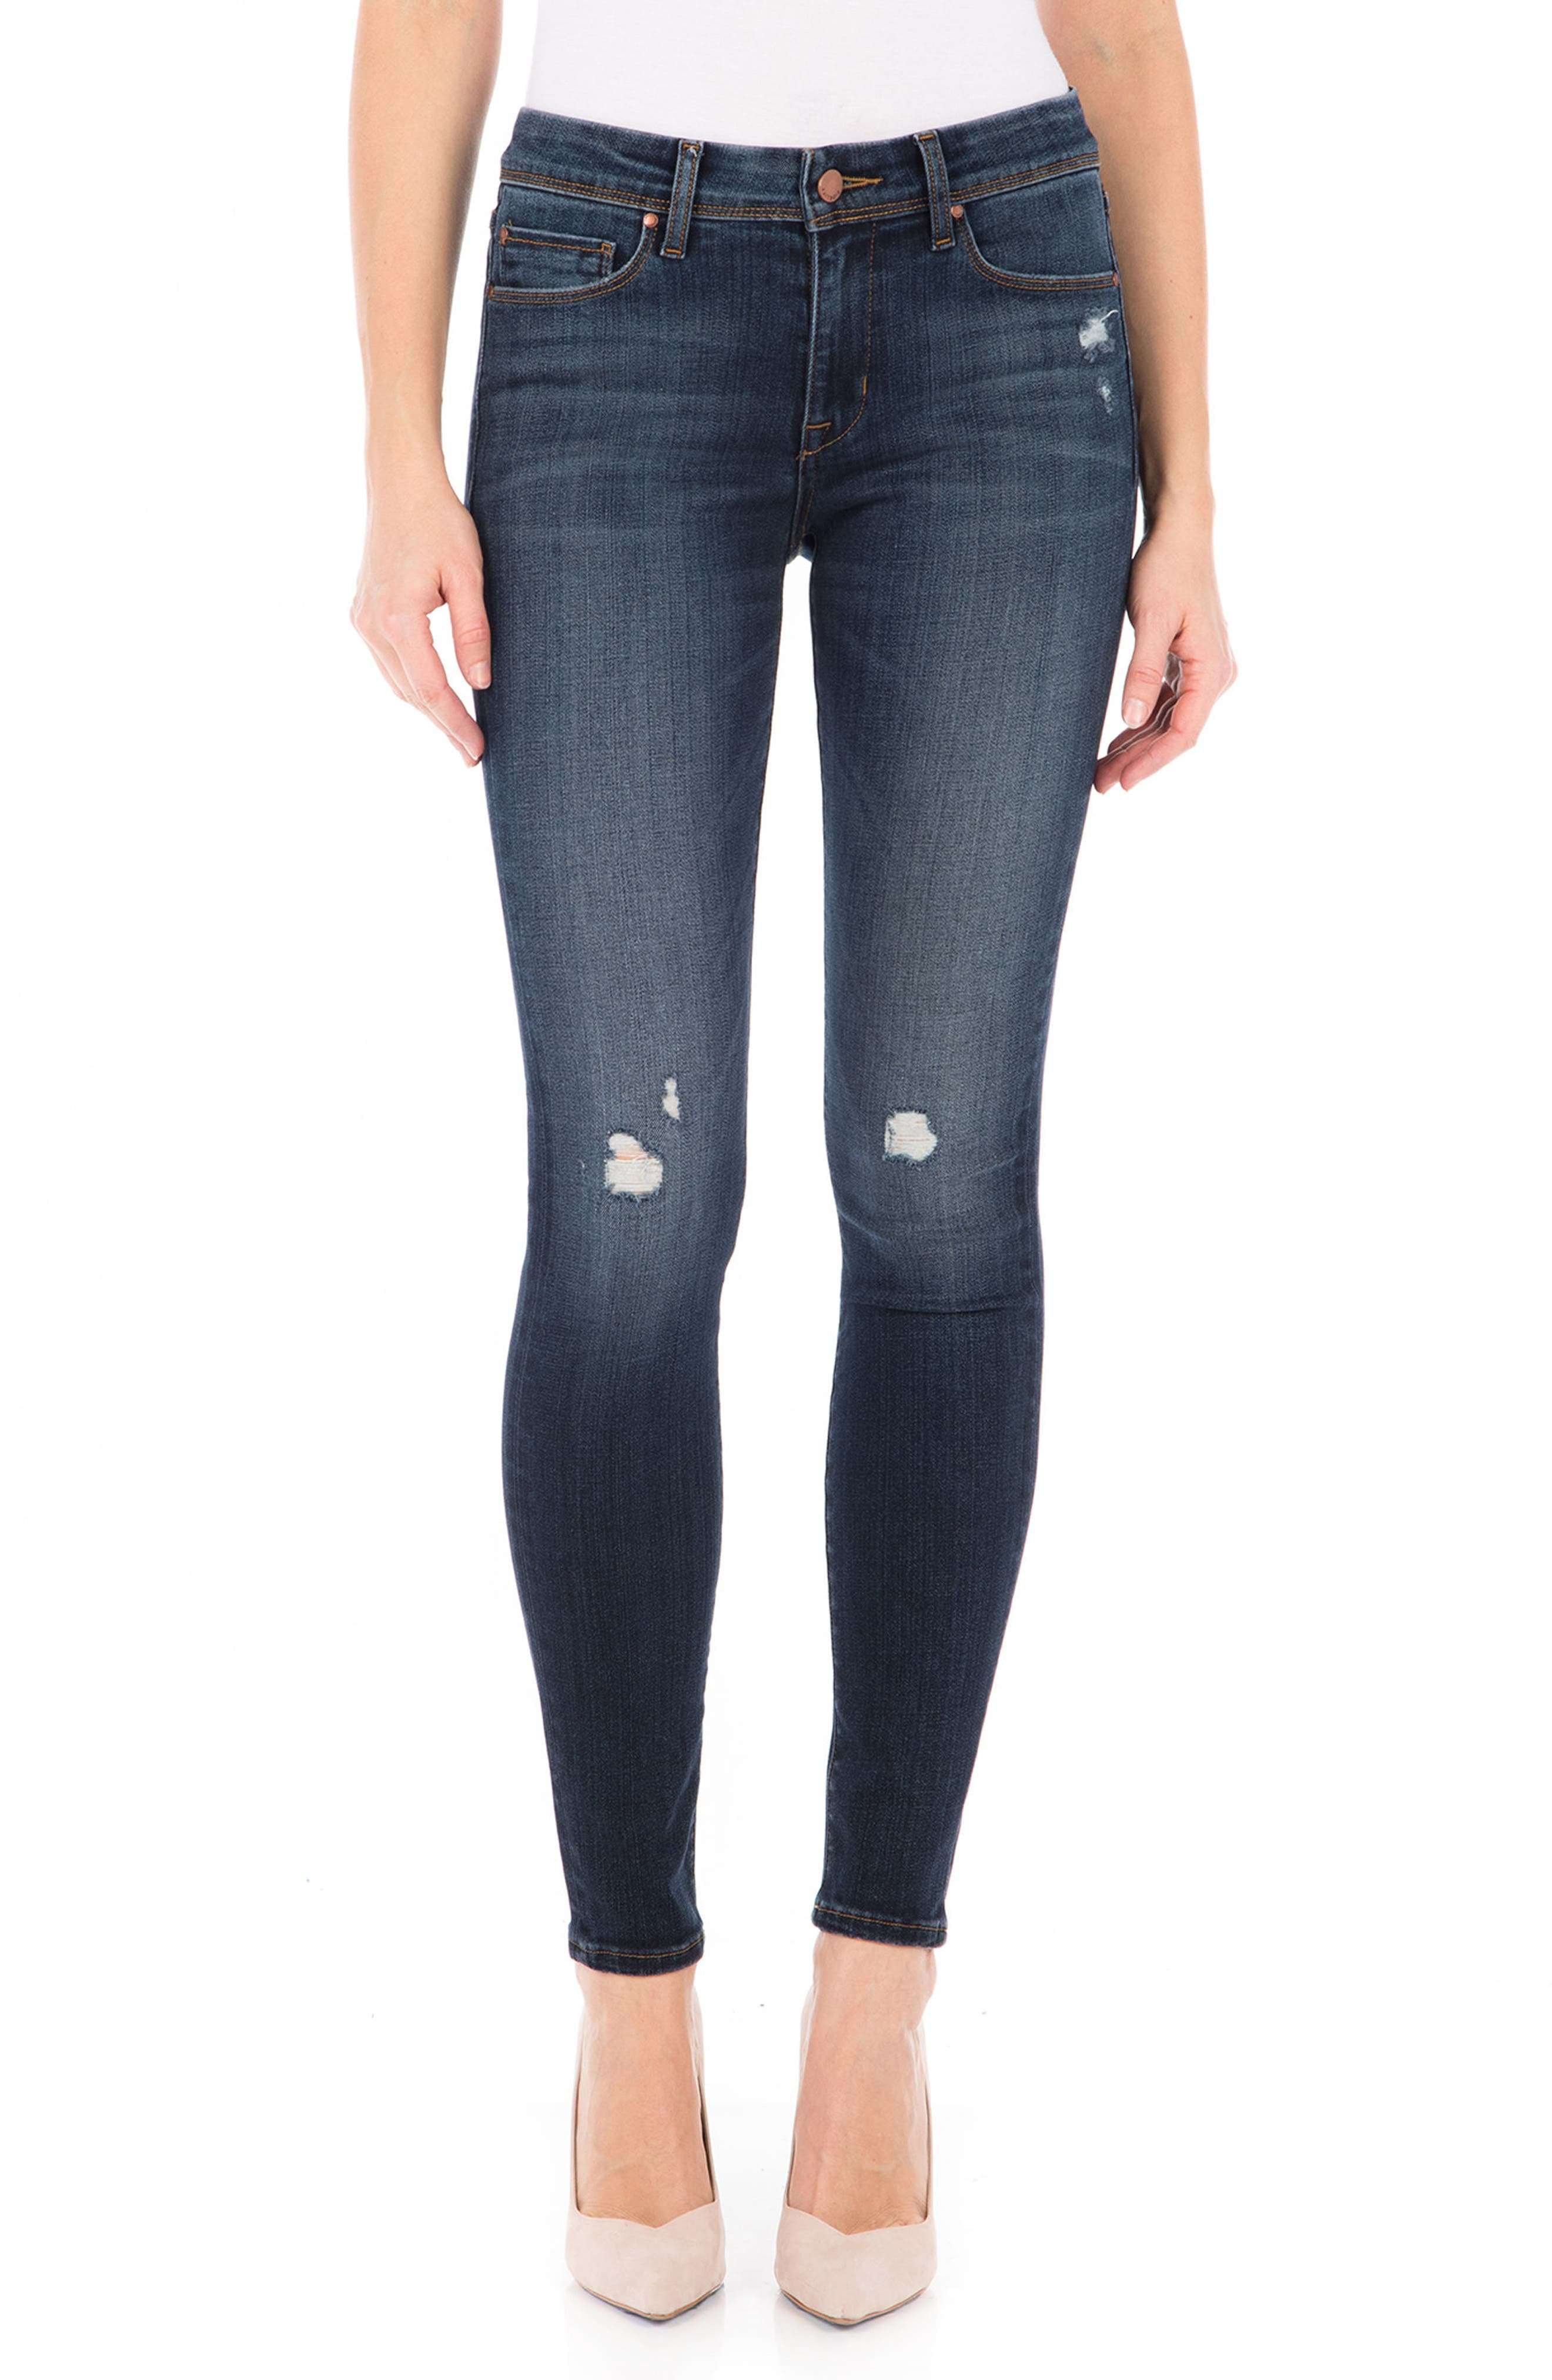 Belvedere Skinny Jeans,                         Main,                         color, 400